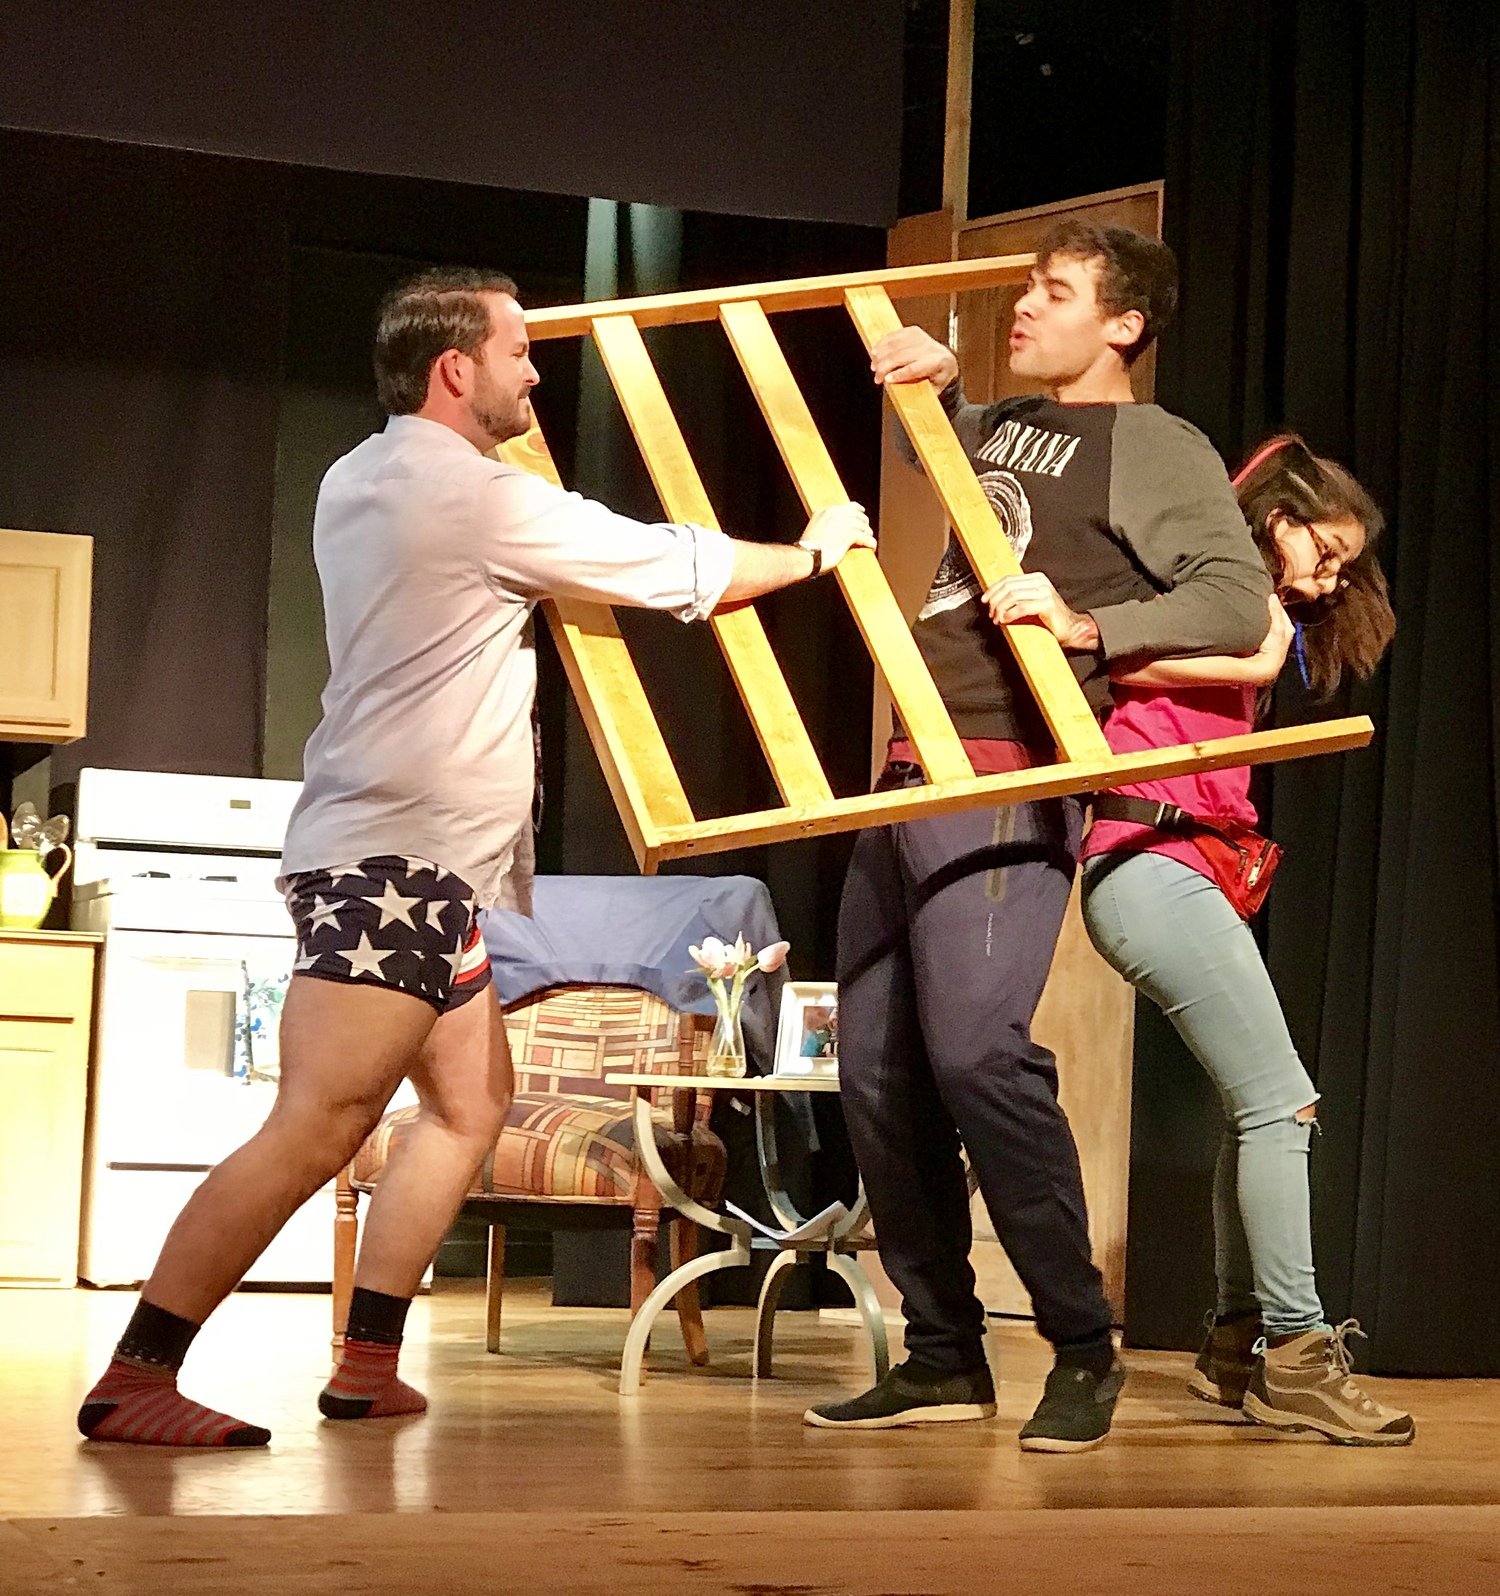 BWW Review: DETC's Production of ELECTION DAY is a Winner